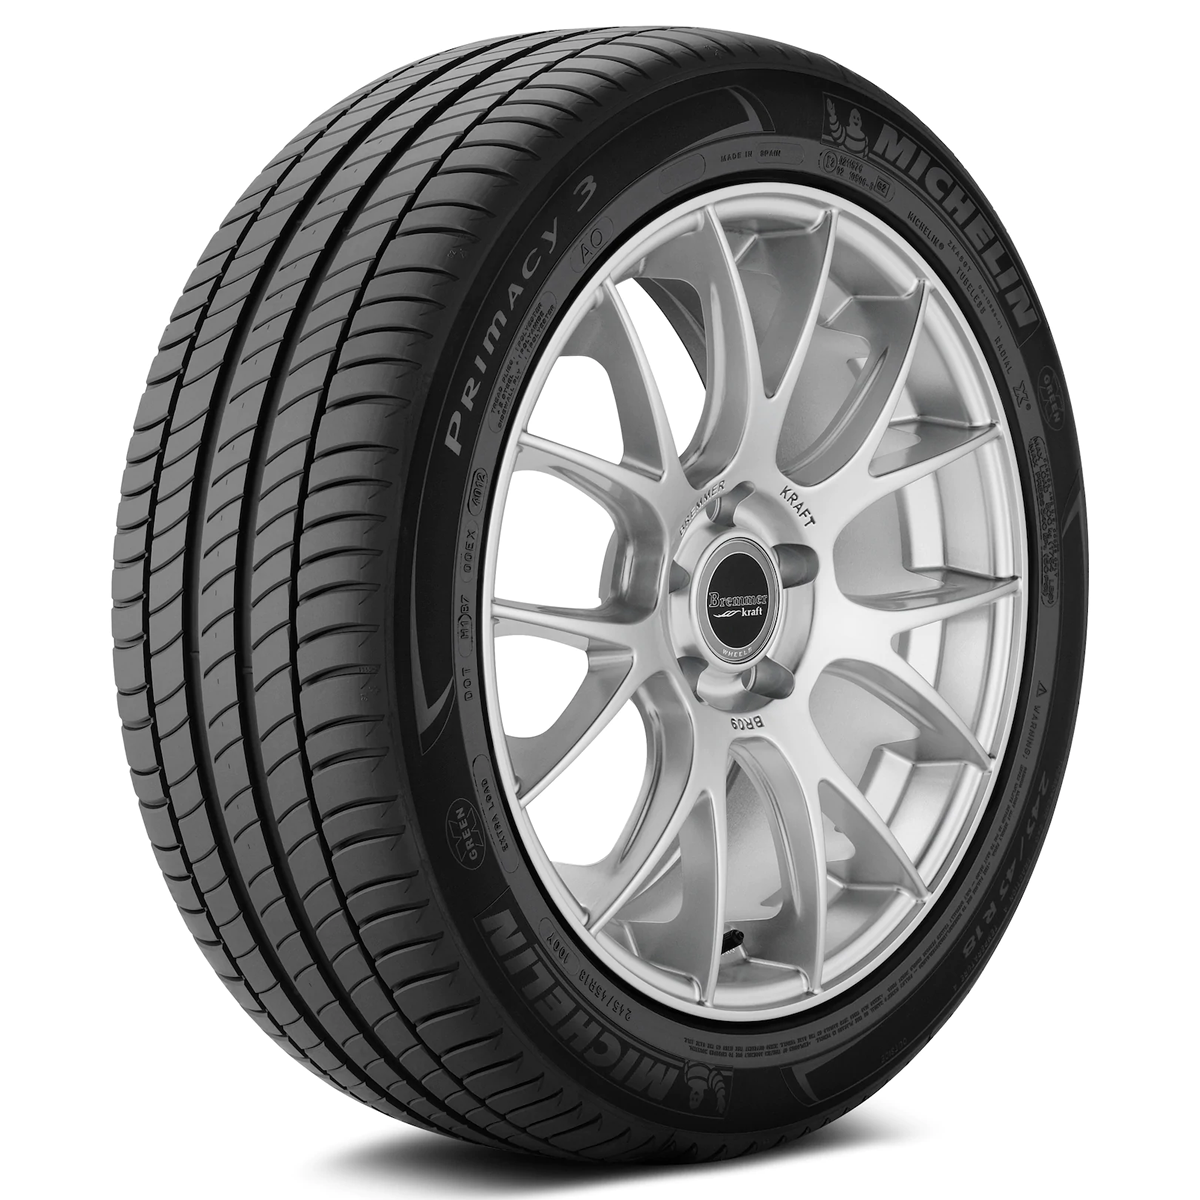 PNEU 215/55-17 94V PRIMACY 3 MICHELIN